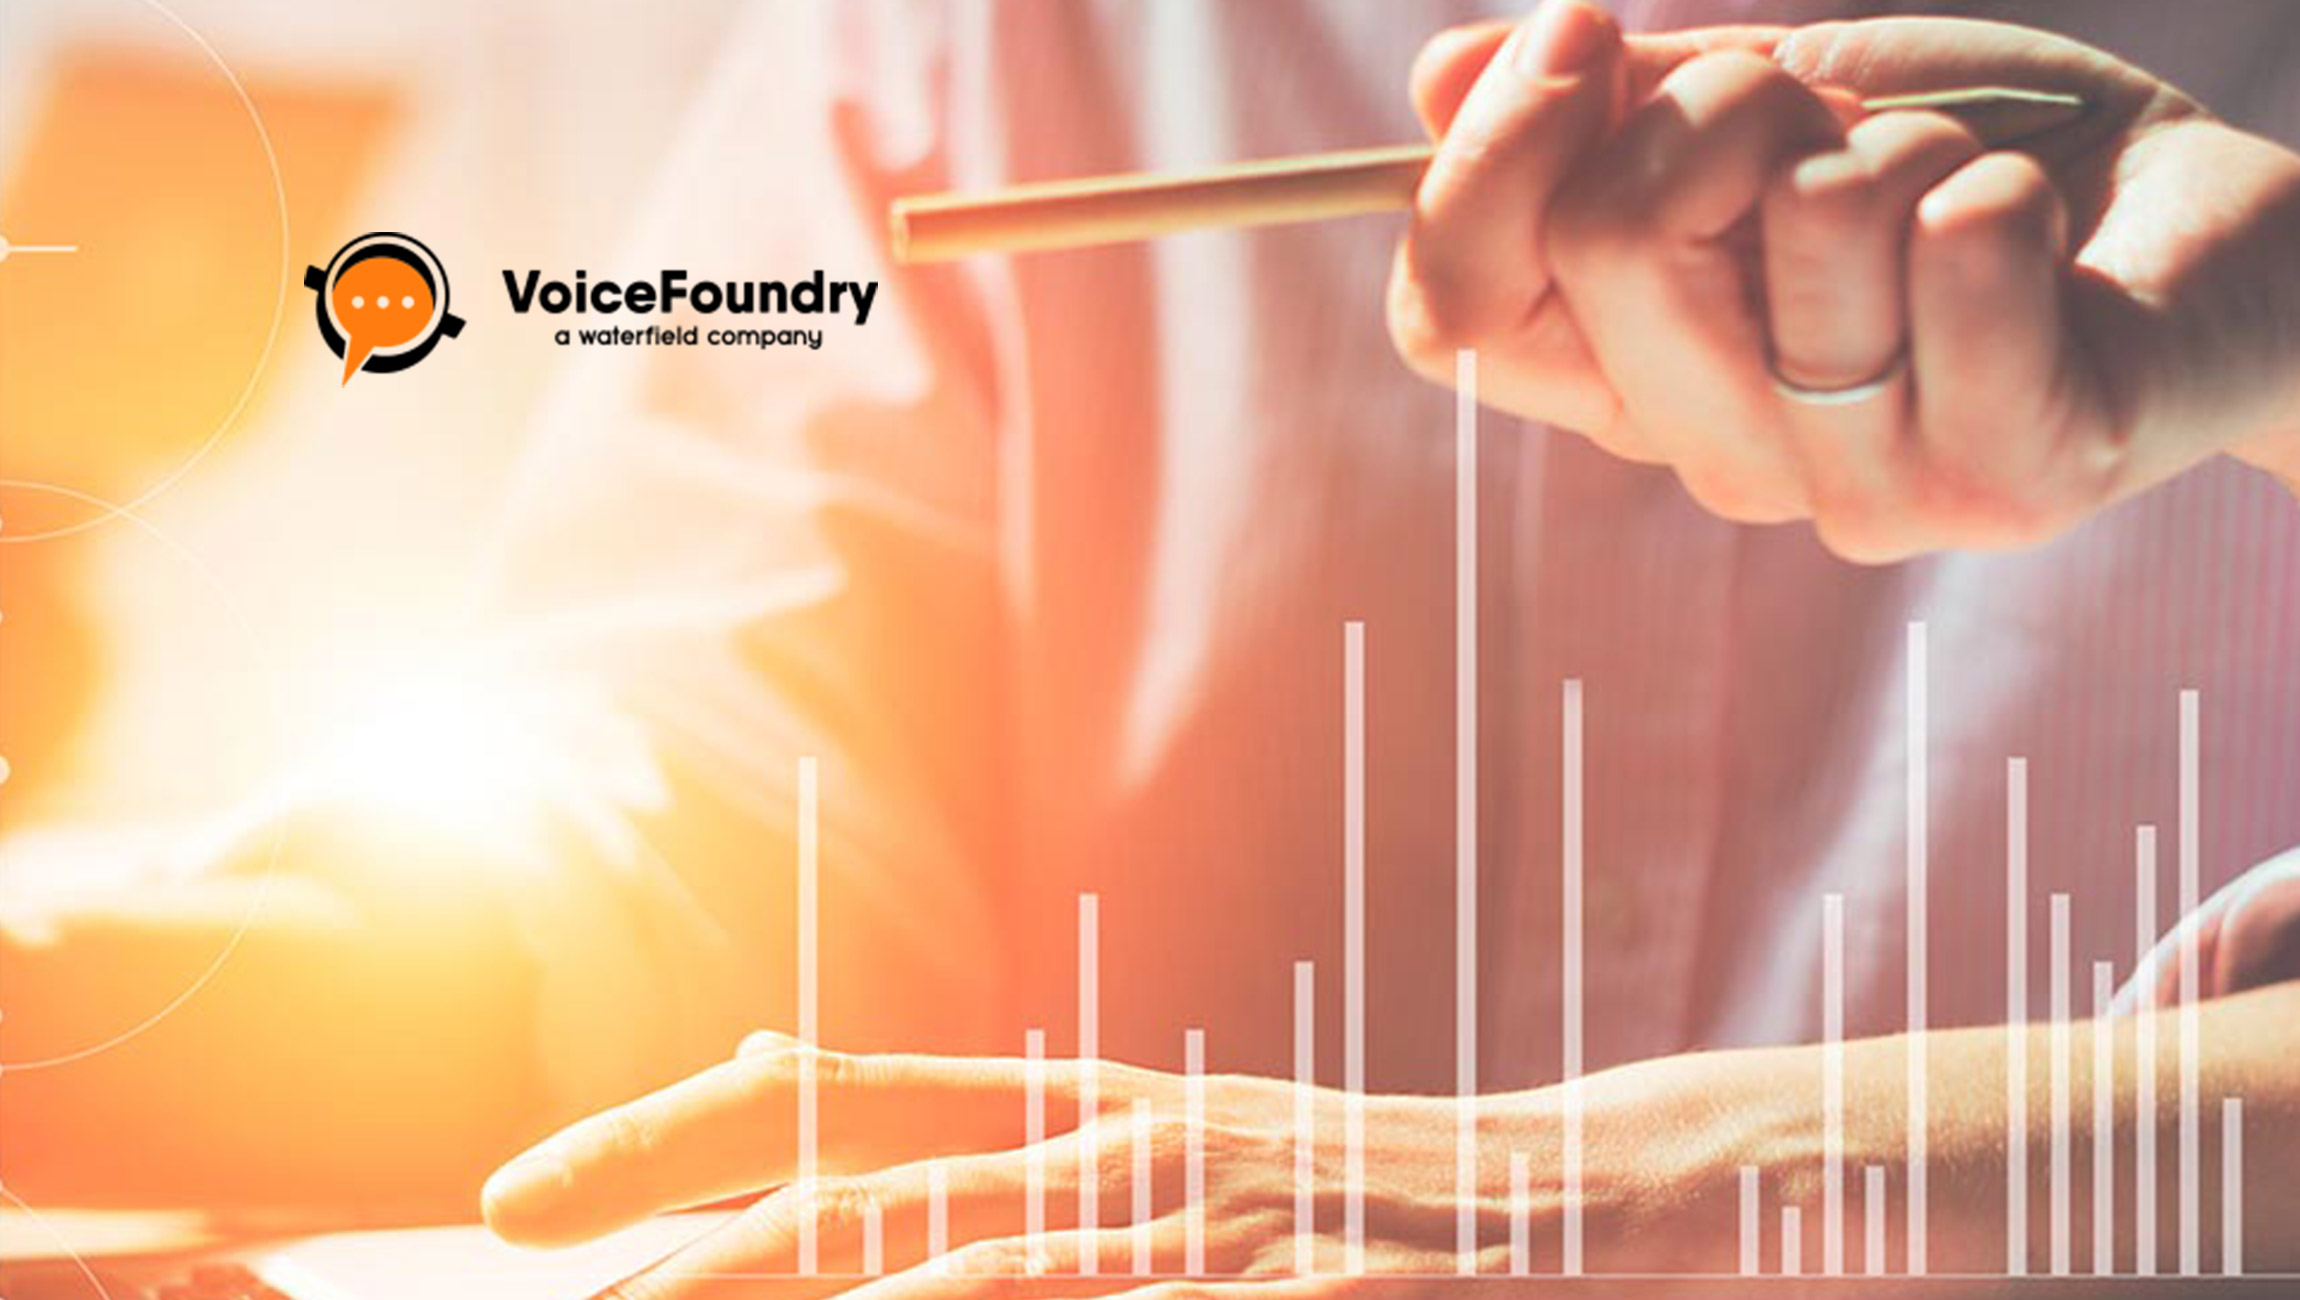 VoiceFoundry Expands Global Deployment of Amazon Connect Services